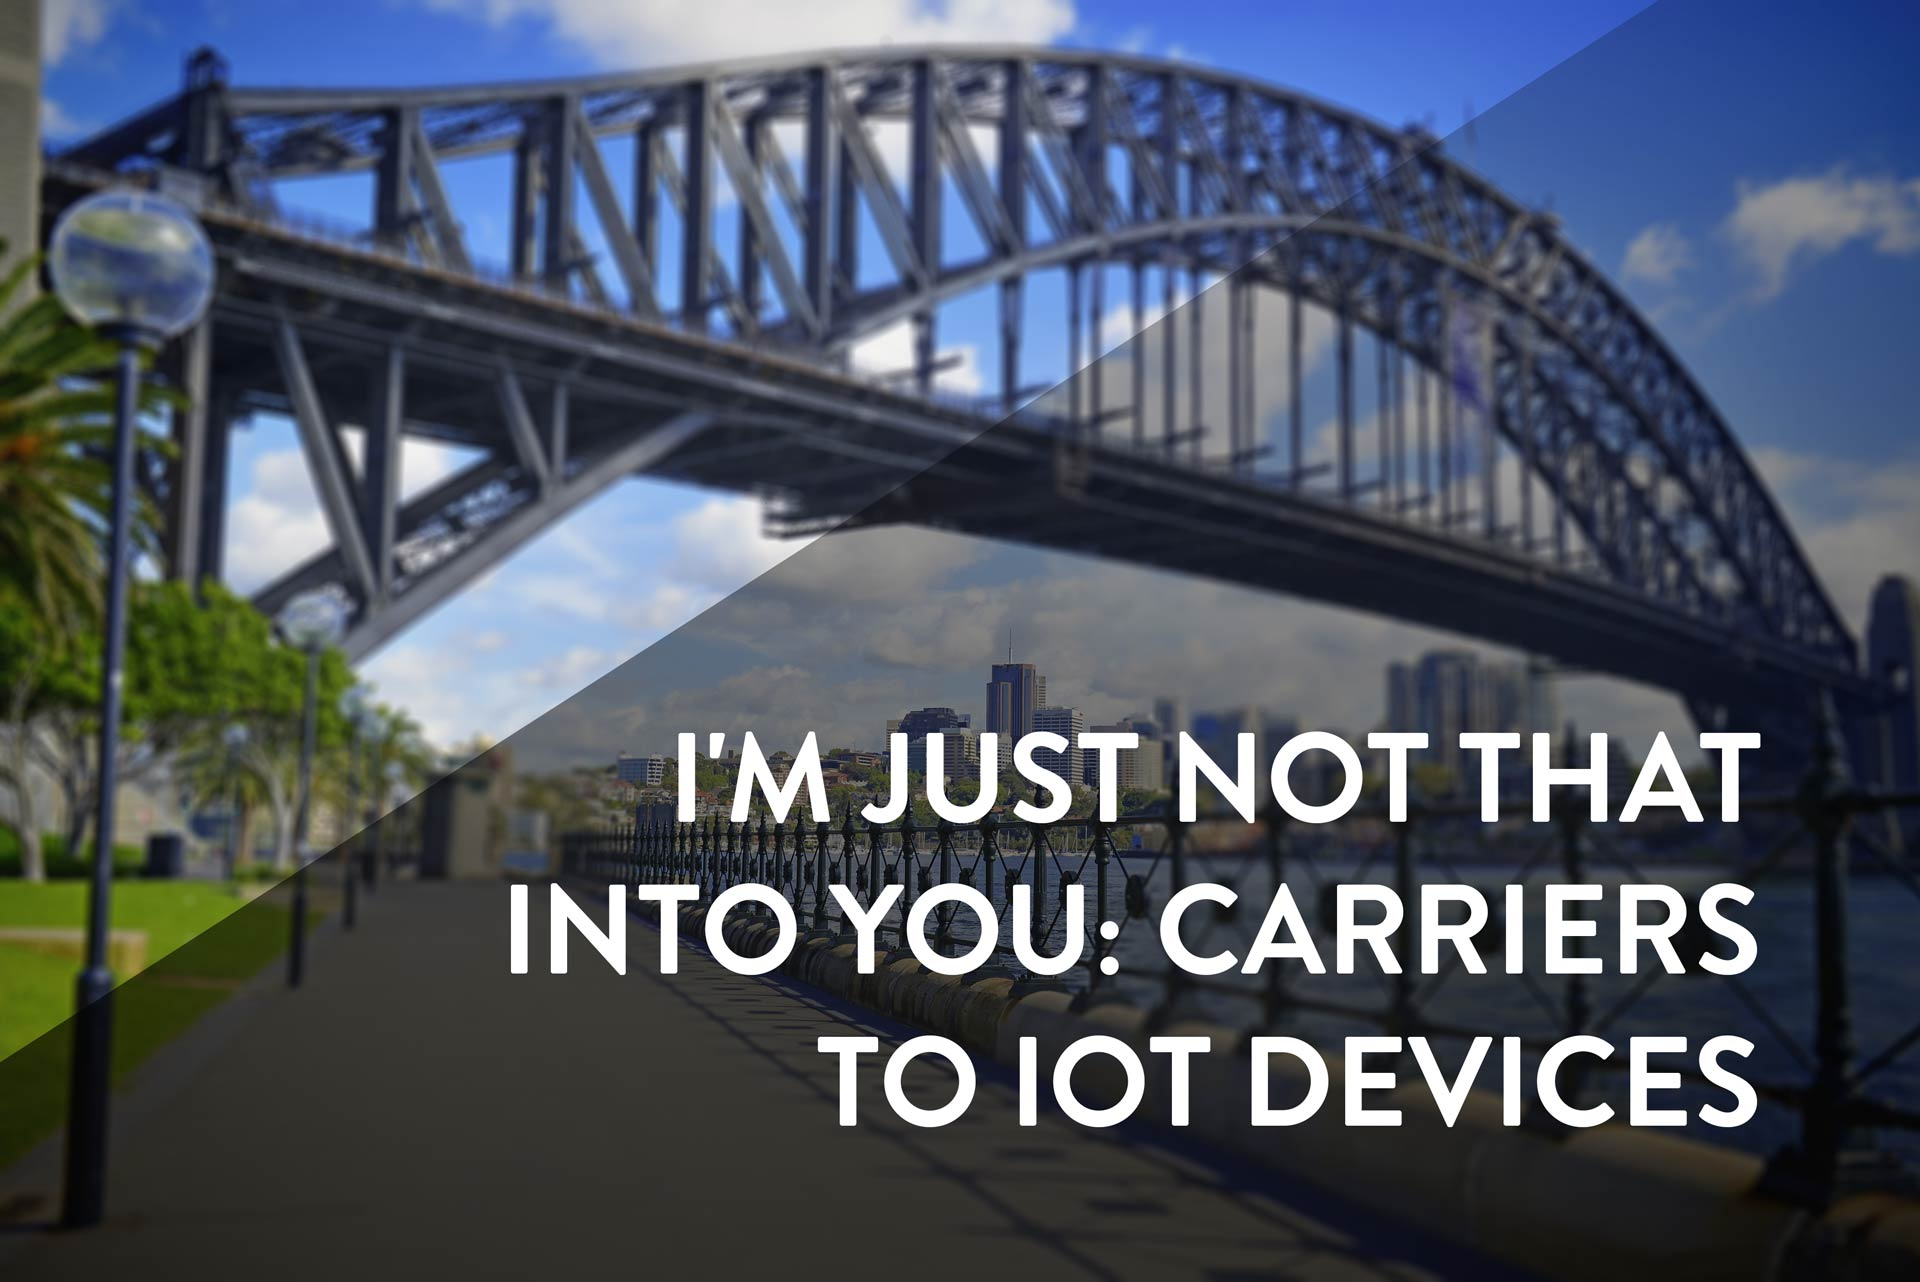 carriers to iot devices